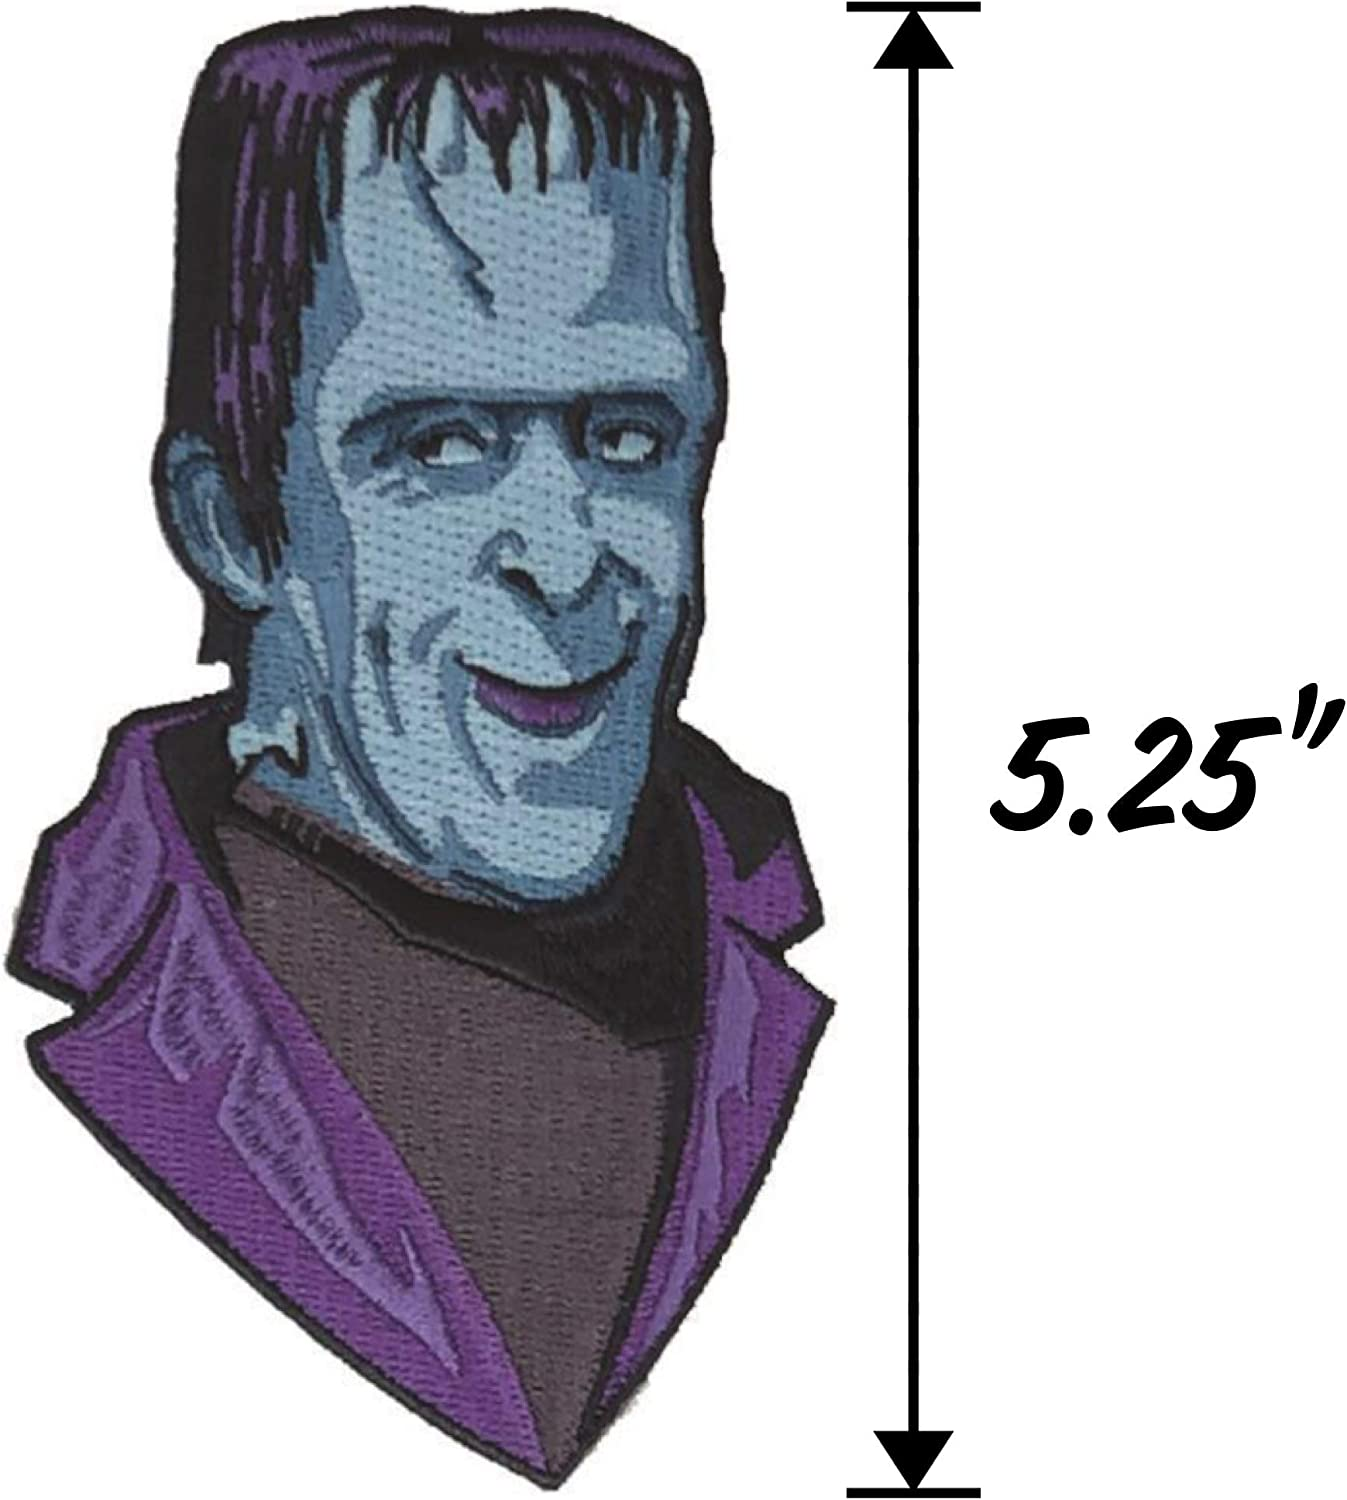 The Munsters Retro-a-go-go Giant Embroidered Iron On Applique Patch Herman Munster